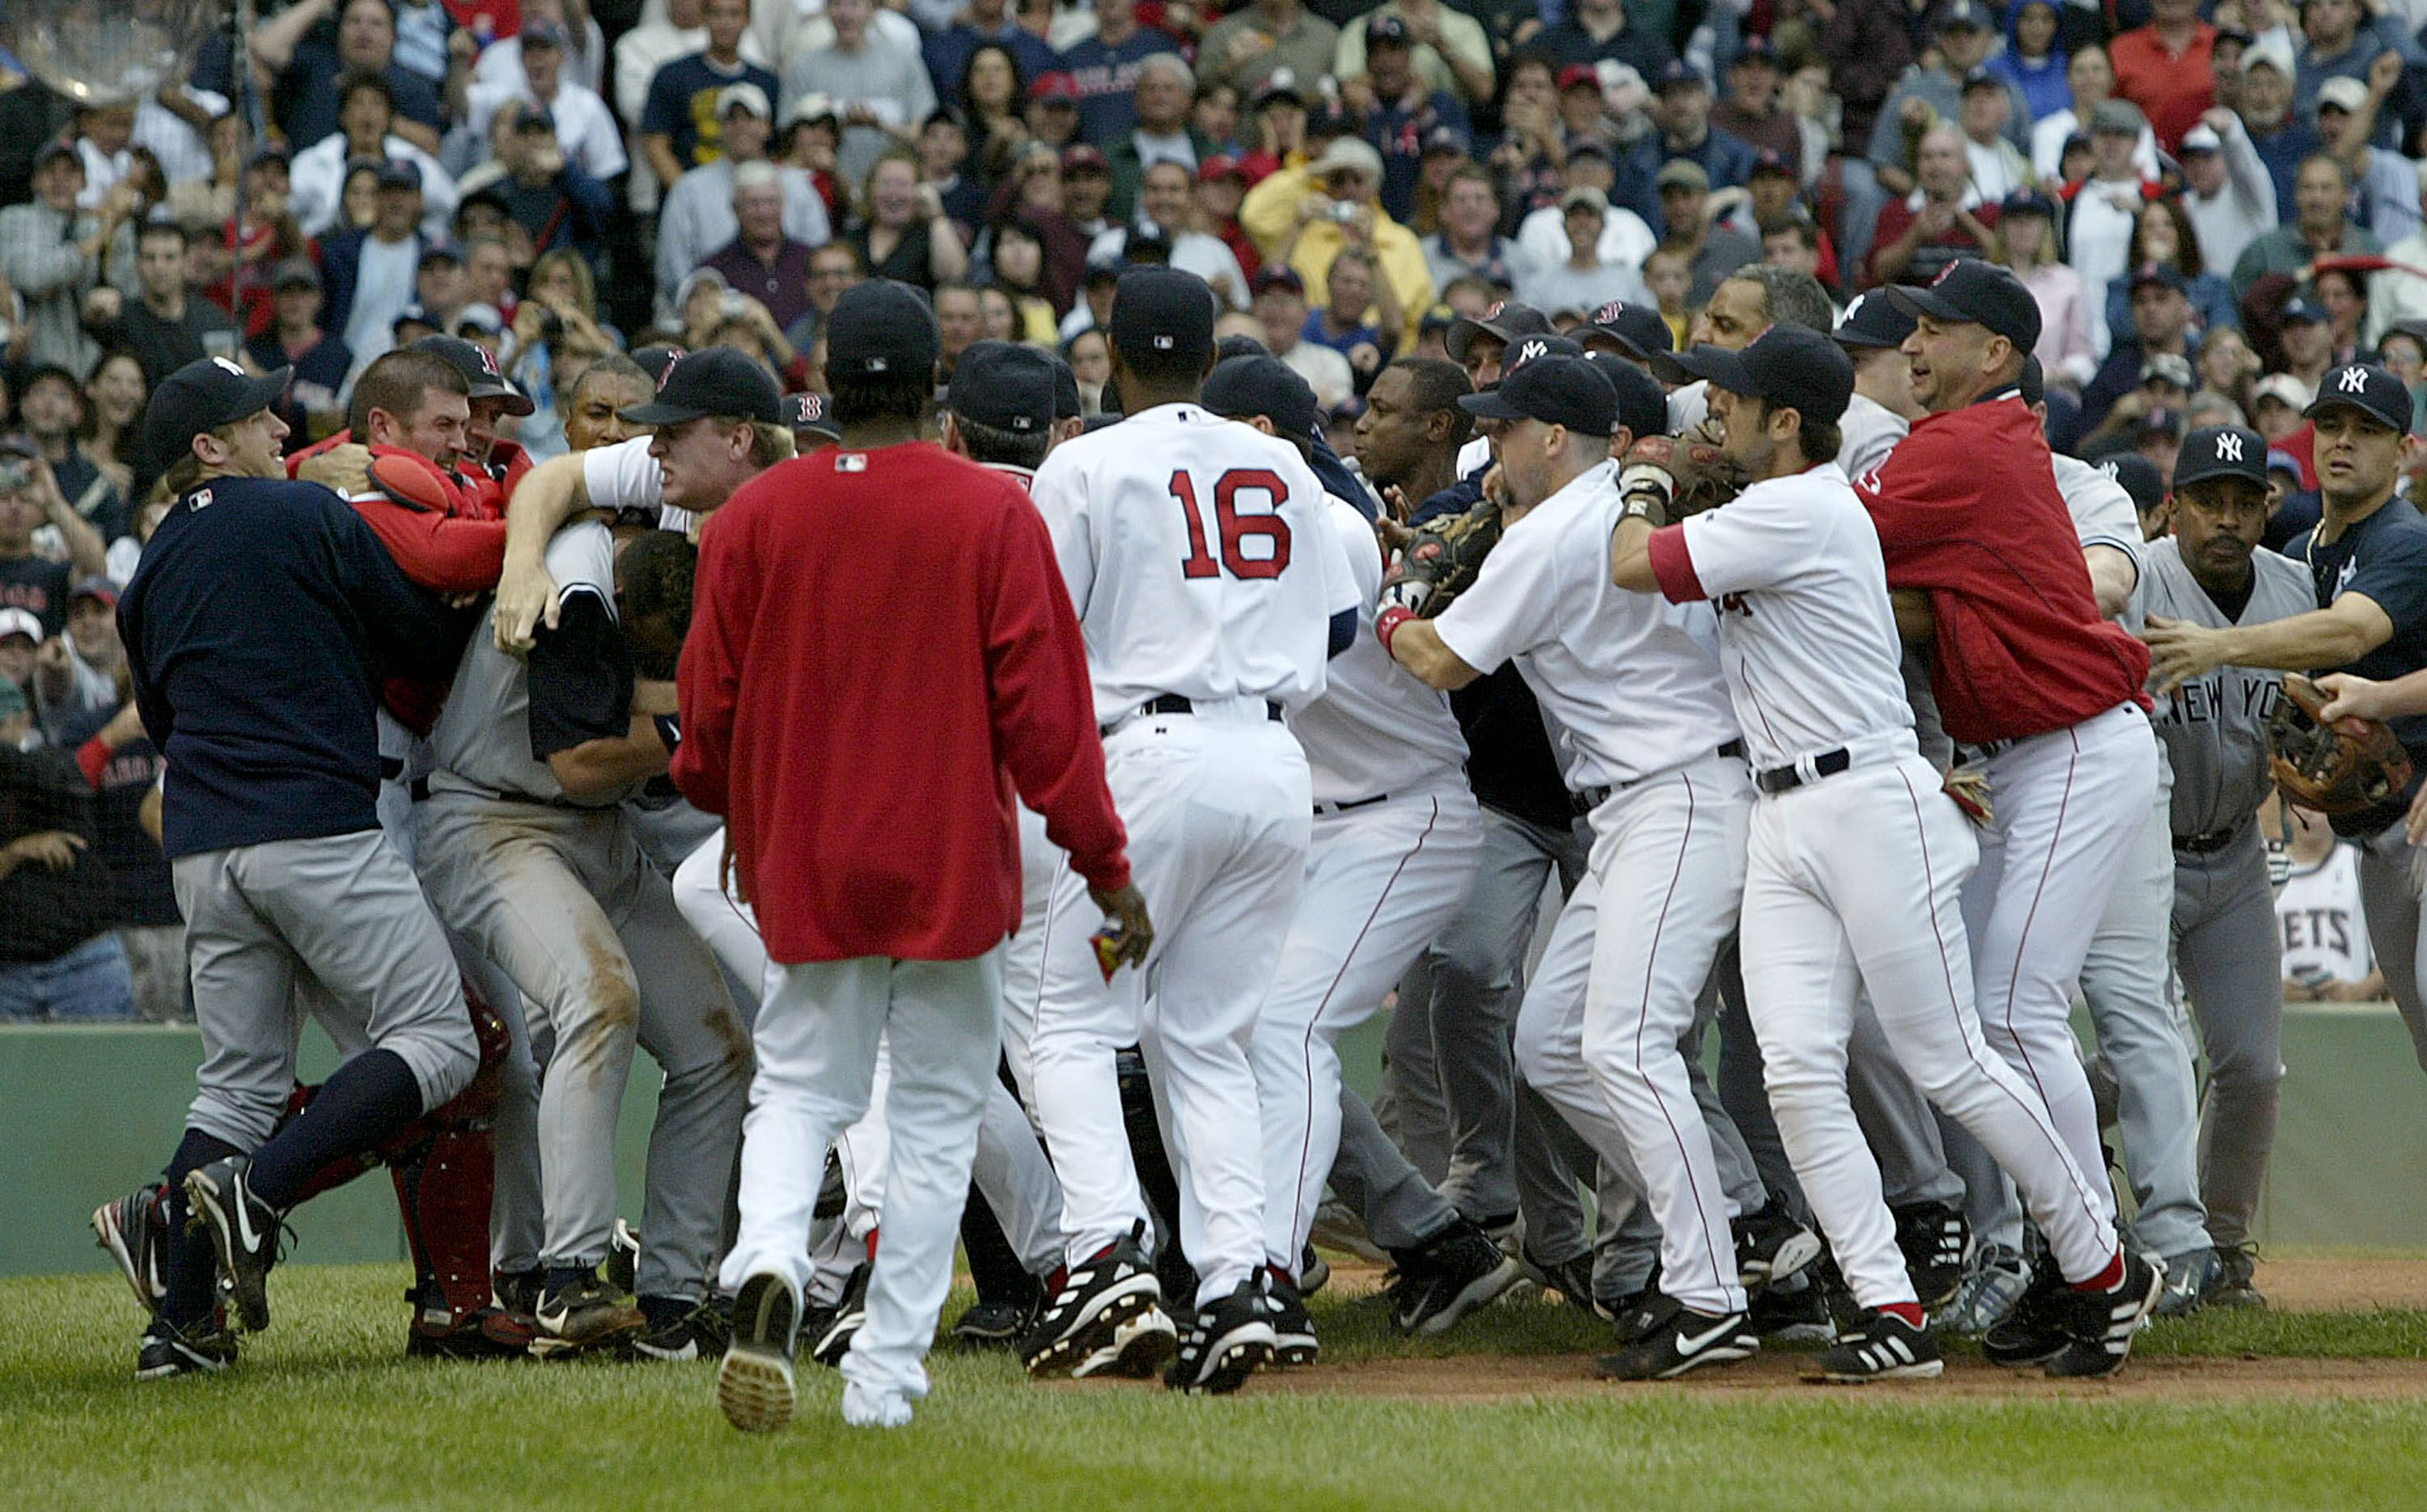 red sox vs yankees essay New york yankees vs boston red sox tickets are among the most highly sought after tickets in all of sports as the teams fiercely battle for a win red sox vs yankees information fenway ticket king still has yankees vs red sox tickets available for the upcoming games in fenway park.